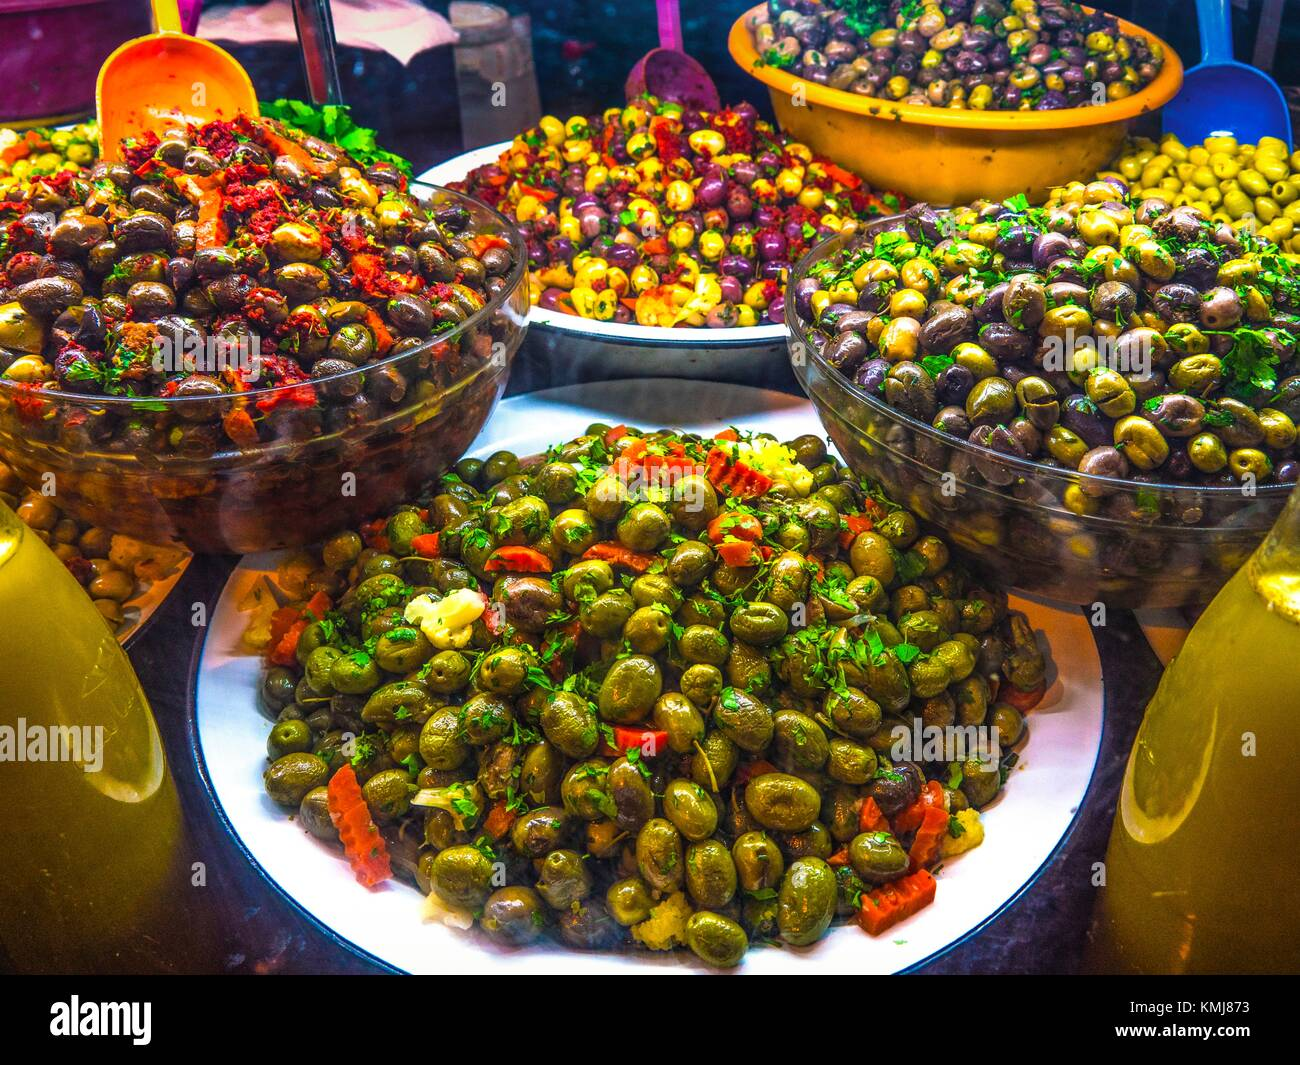 Morocco, Fes, Food, preserved olives on a stand in the ''Medina'' (old part) of Fes. - Stock Image